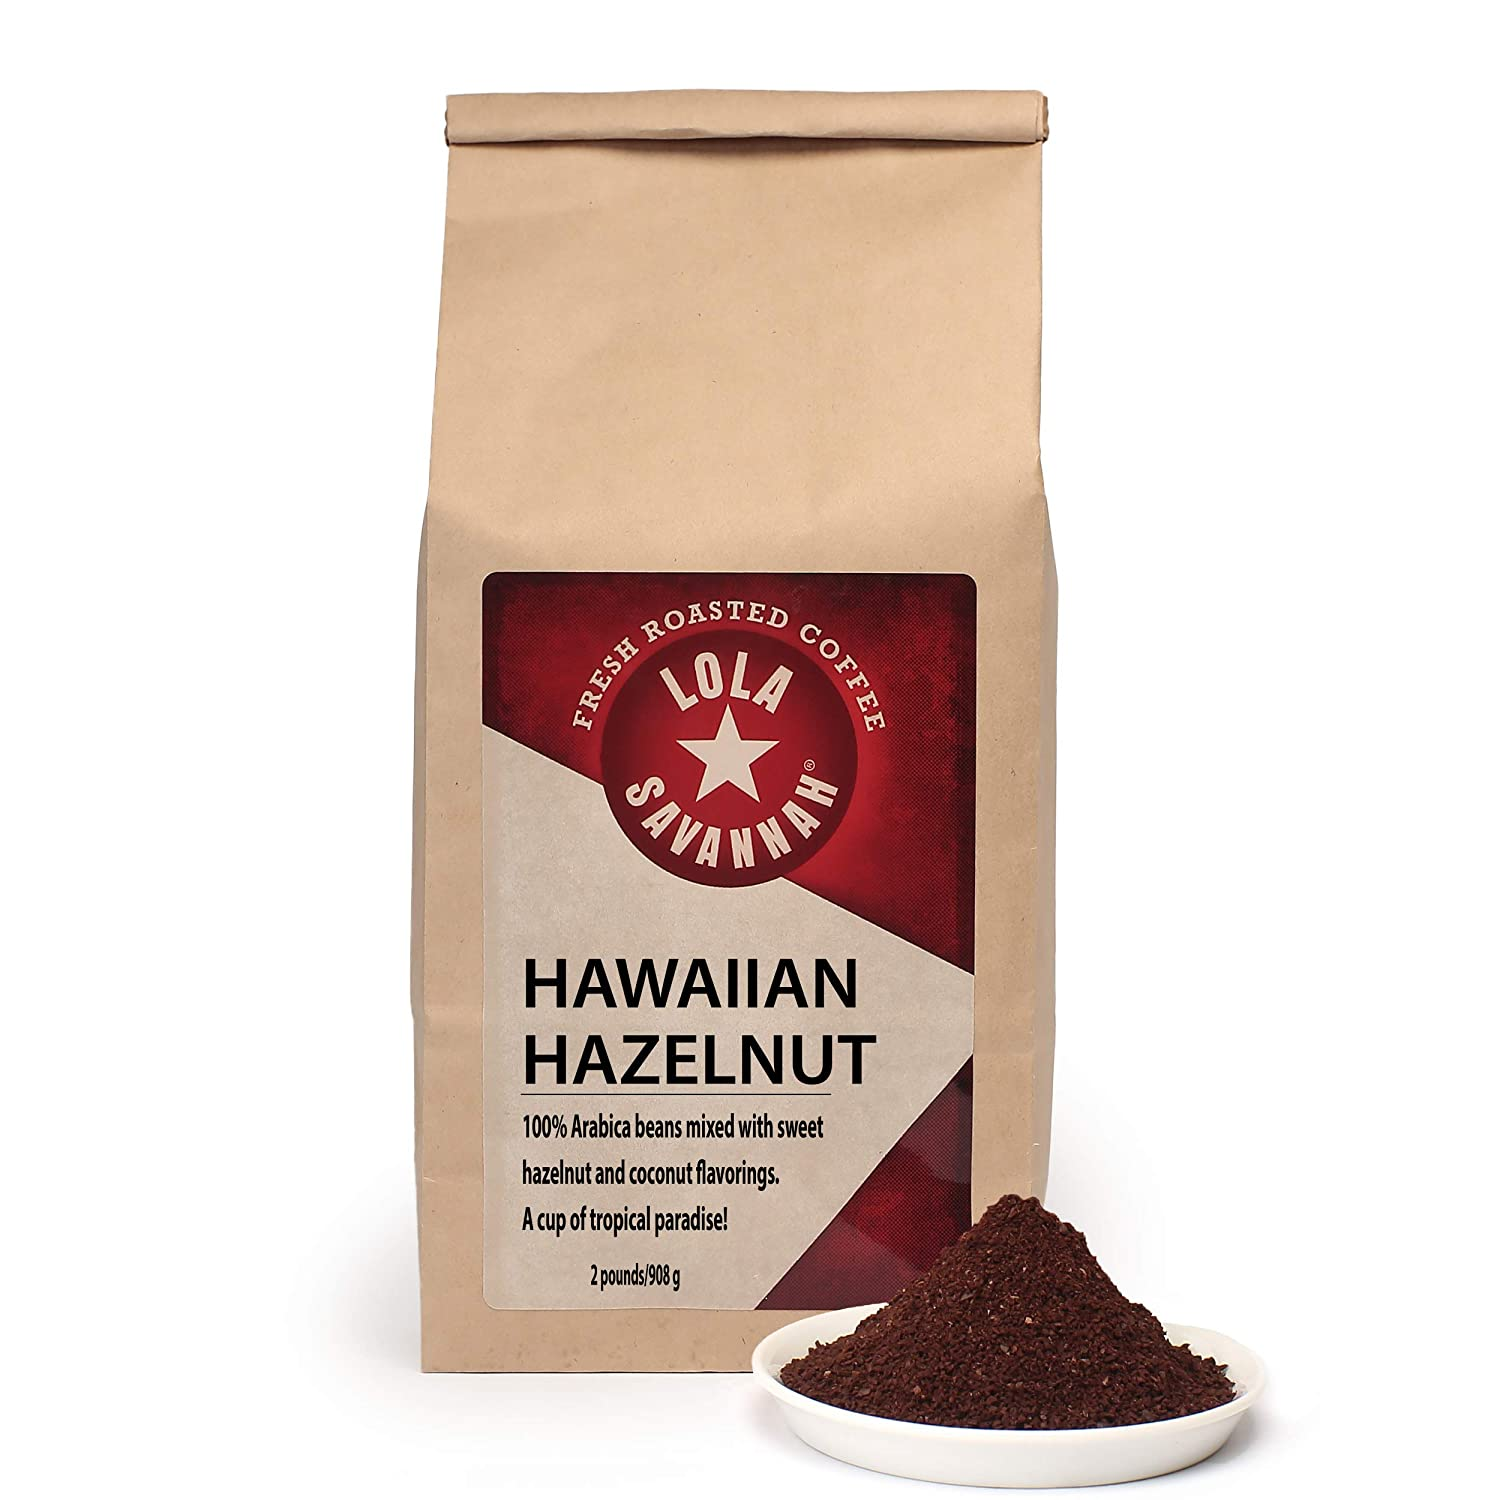 Lola Savannah Hawaiian Hazelnut Ground Coffee - Tropical Inspired Blend Infused with Buttery Hazelnuts and a Milky Sweet Note from Coconuts, Caffeinated, 2lb Bag